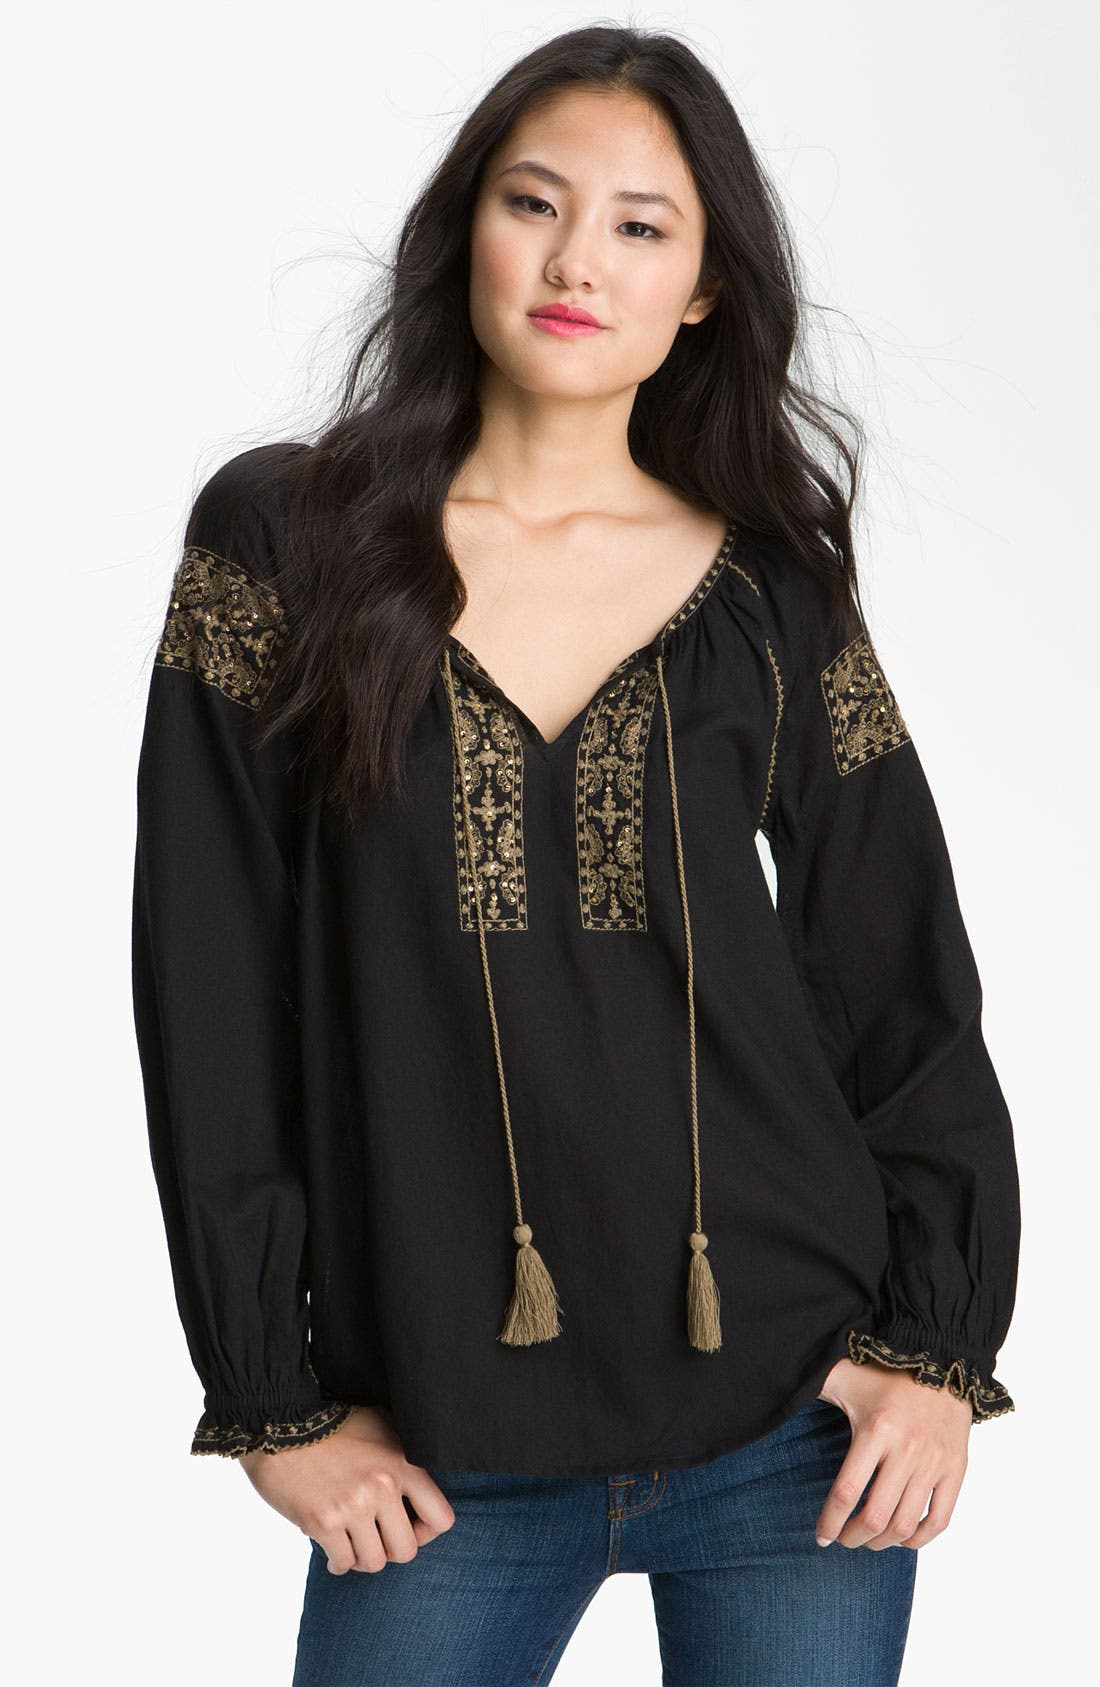 Alternate Image 1 Selected - Lucky Brand 'Rhiannon' Peasant Top (Plus)